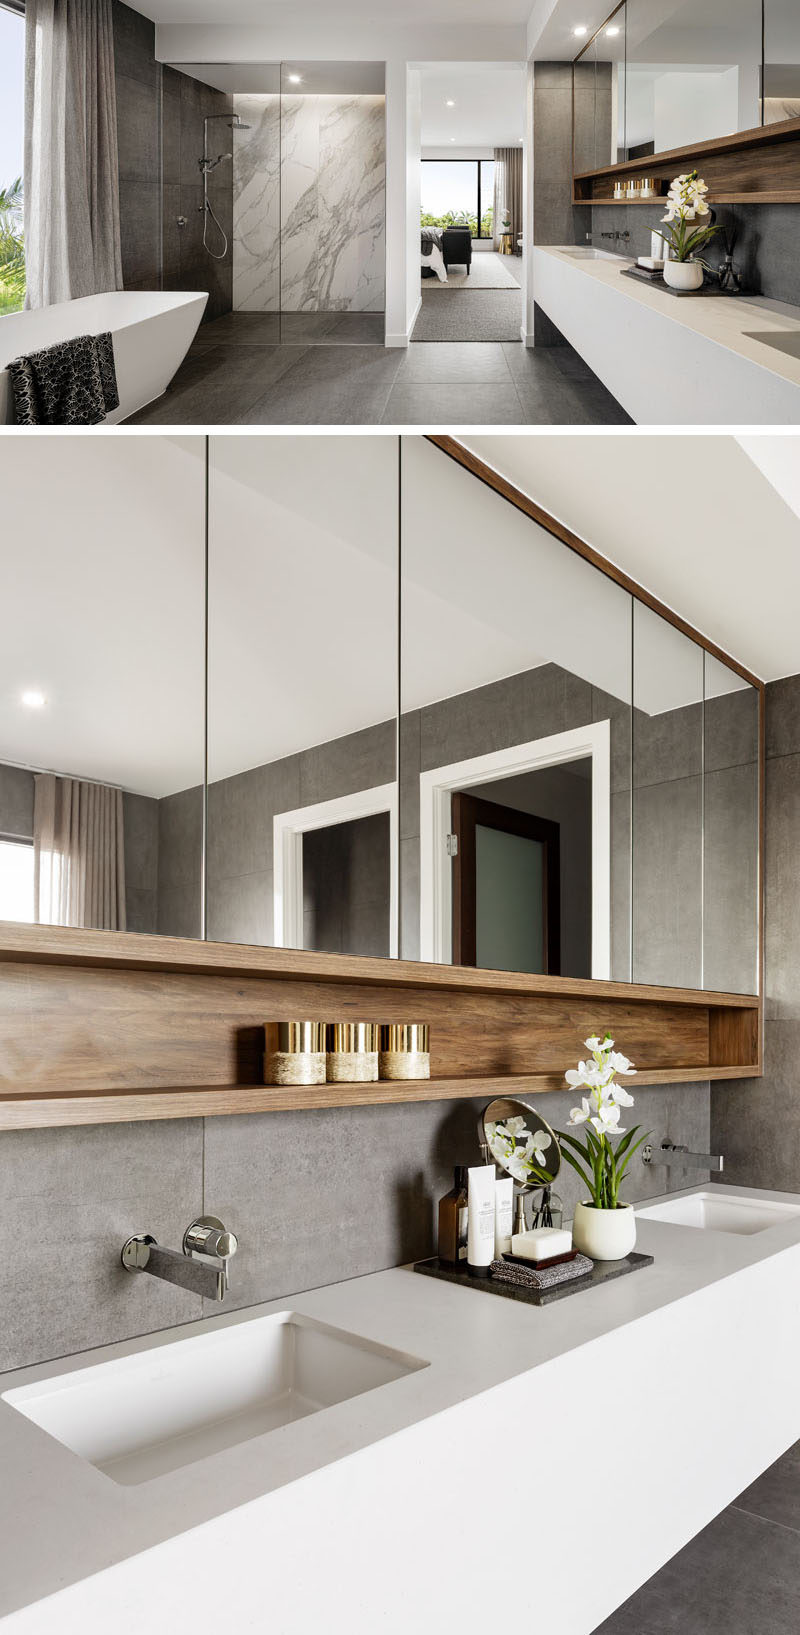 A modern ensuite bathroom features a large walk-in shower, a long white vanity with undermount sinks, and a freestanding bathtub.